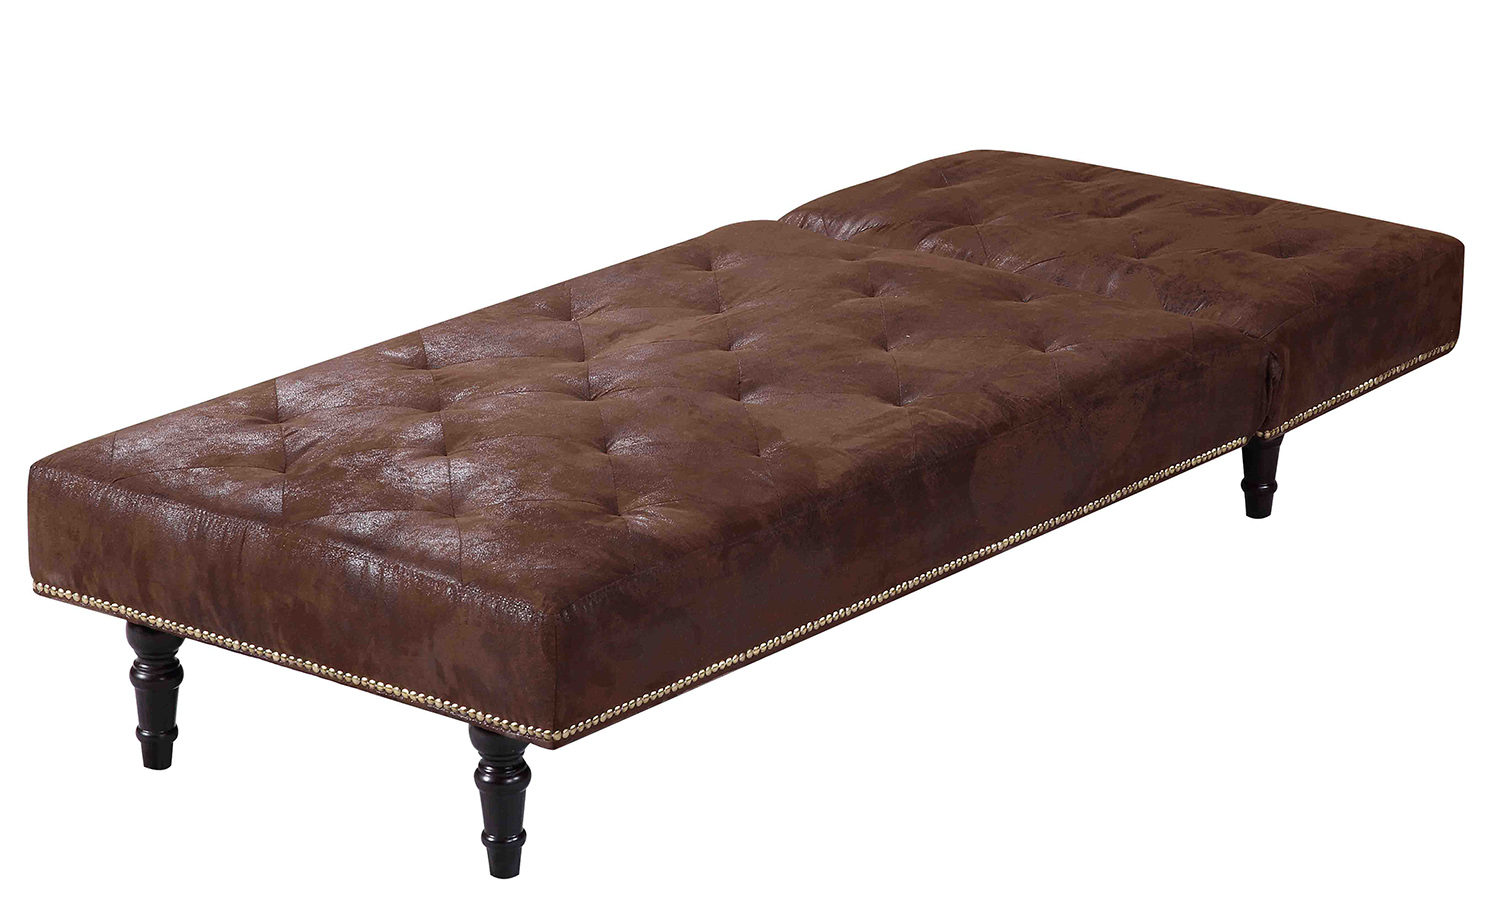 Luxury fabric chaise longue 1 seater sofa bed brown for Chaise longue sofa bed ebay